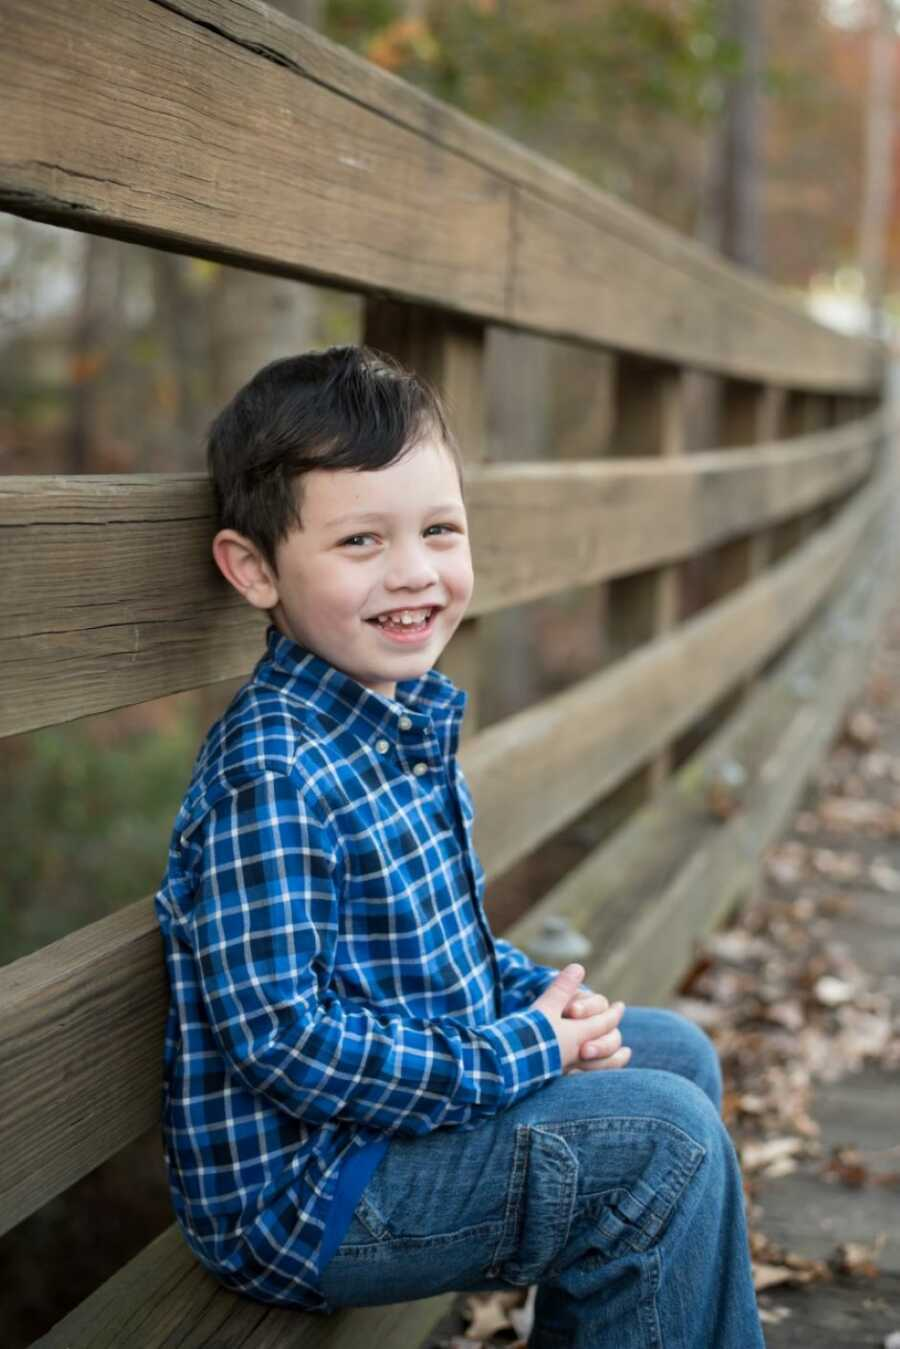 Little boy smiles big for a photo while wearing a blue plaid shirt and blue jeans, sitting down on a wooden bridge